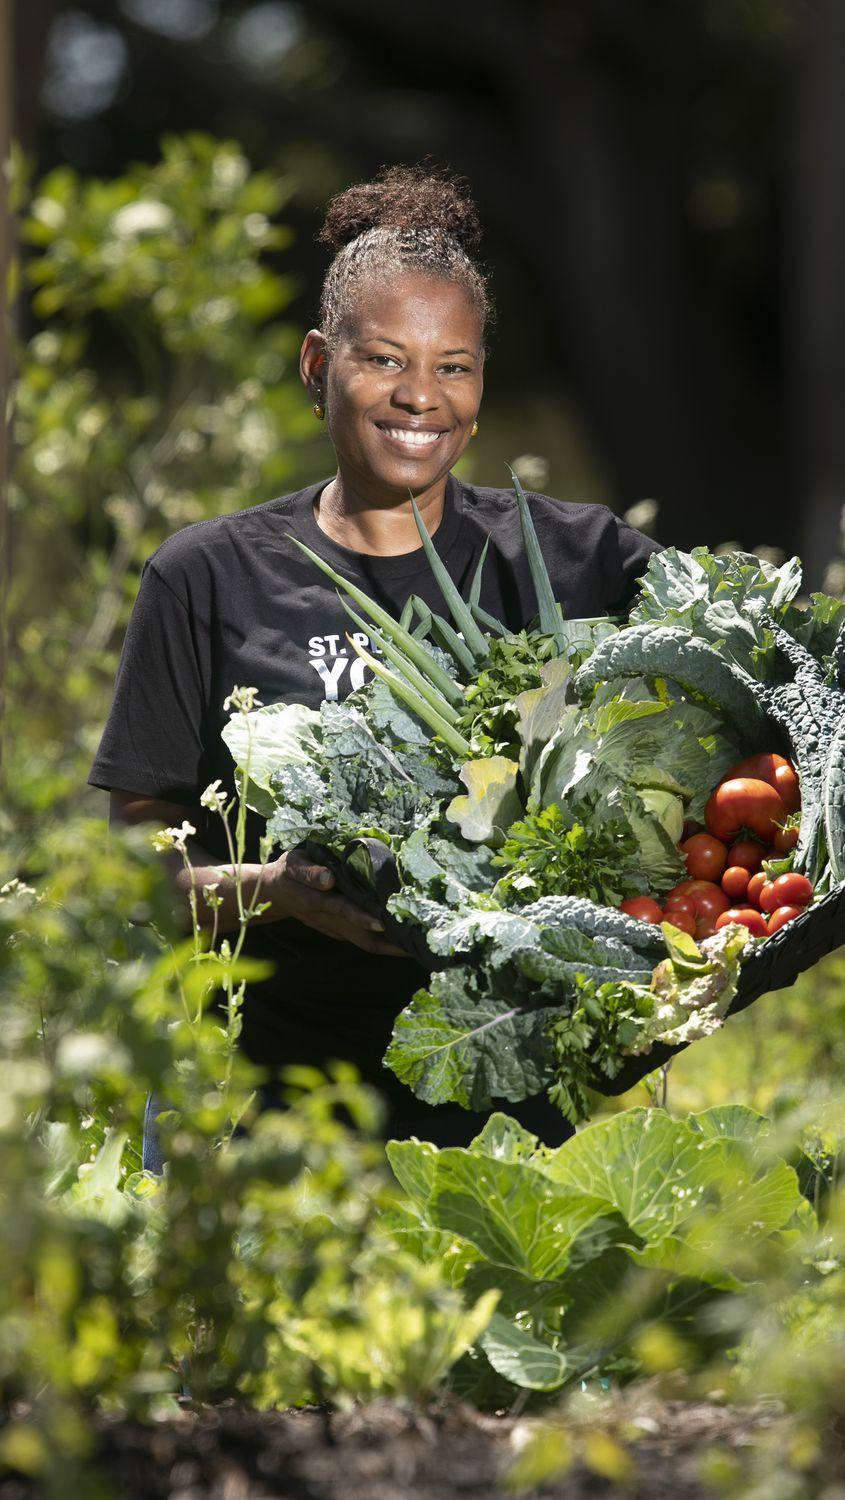 Community activist Carla Bristol at the St. Petersburg Urban Youth Farm at Pinellas Technical College.